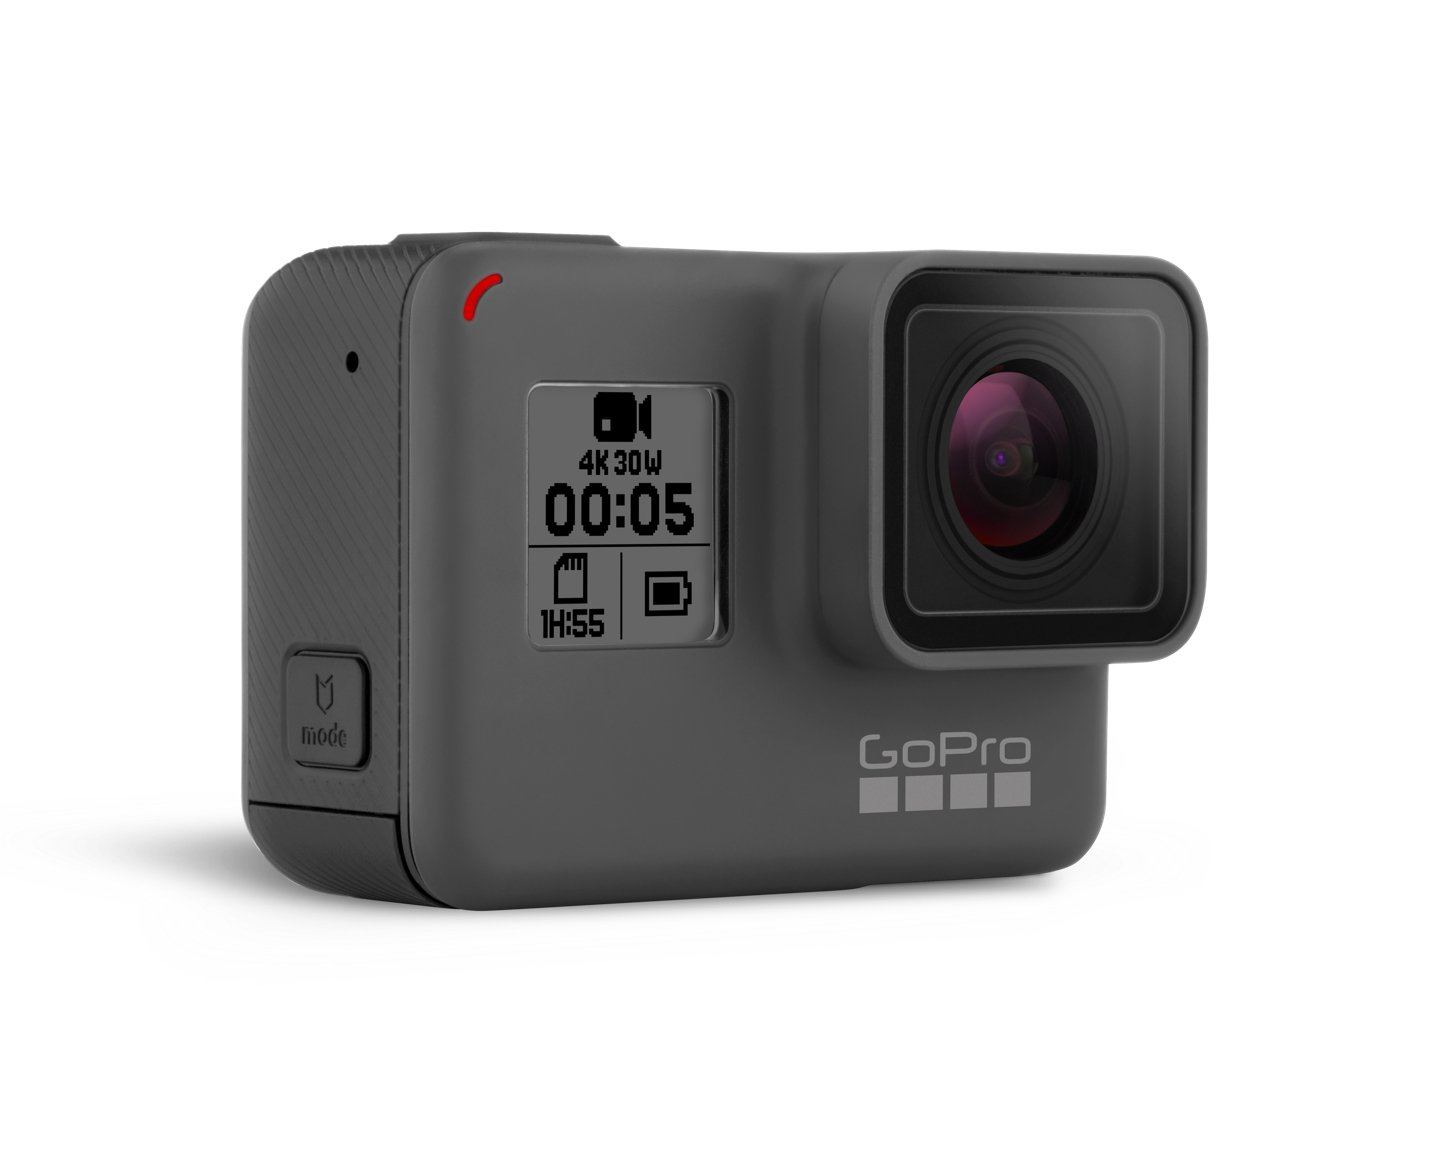 GoPro HERO Action Camera for Traveling